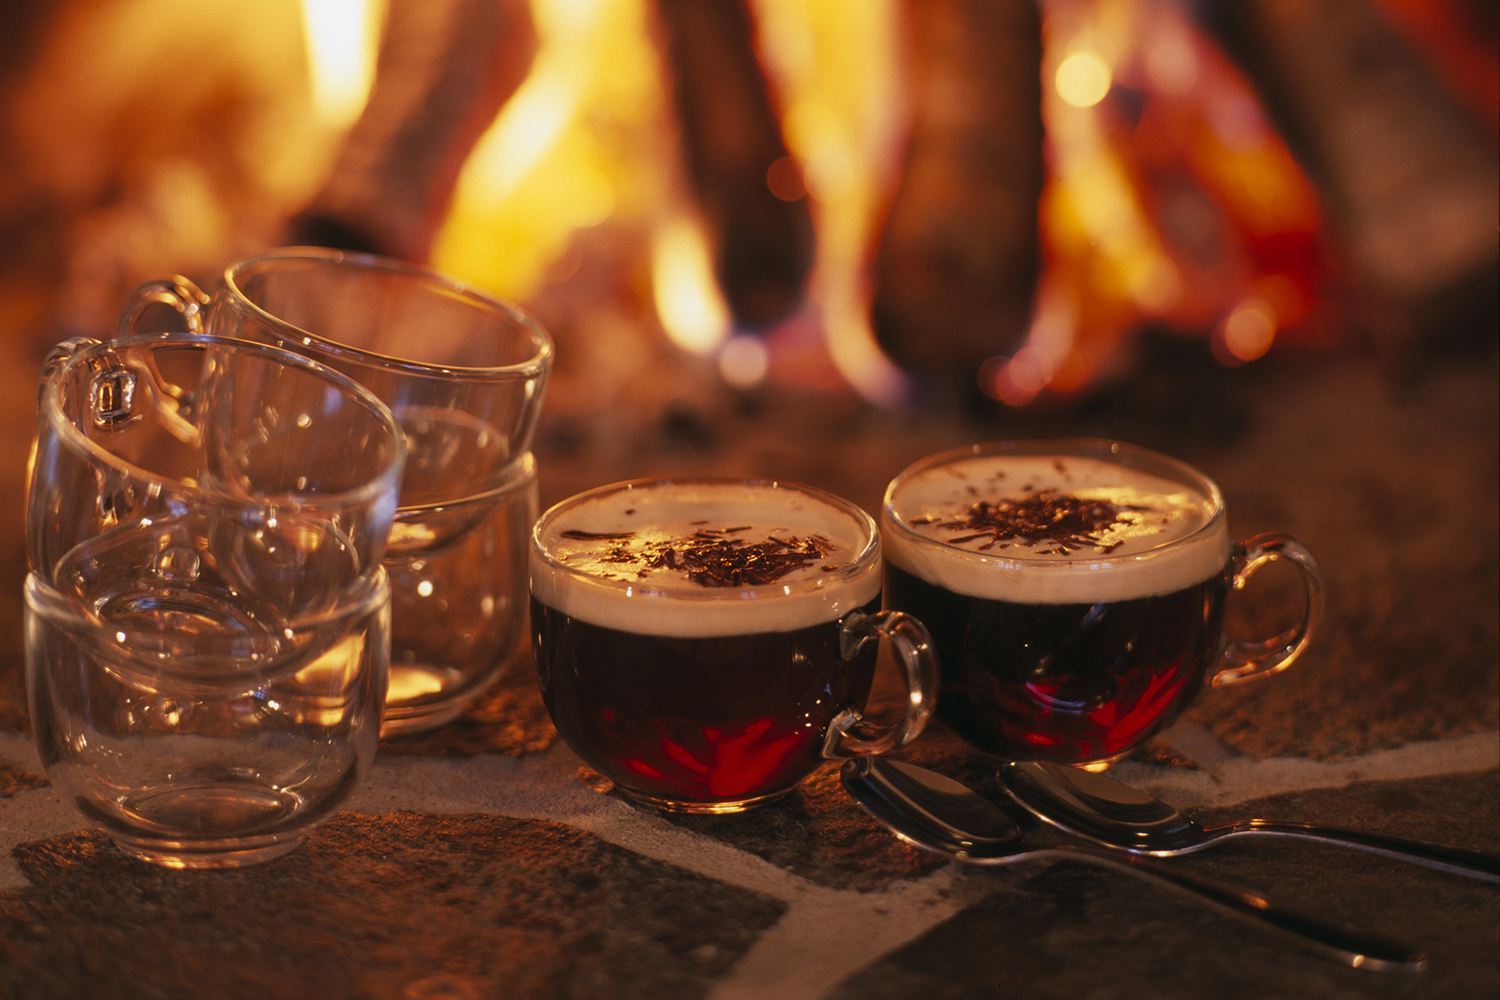 Brandy and sherry in a traditional holiday Wassail.